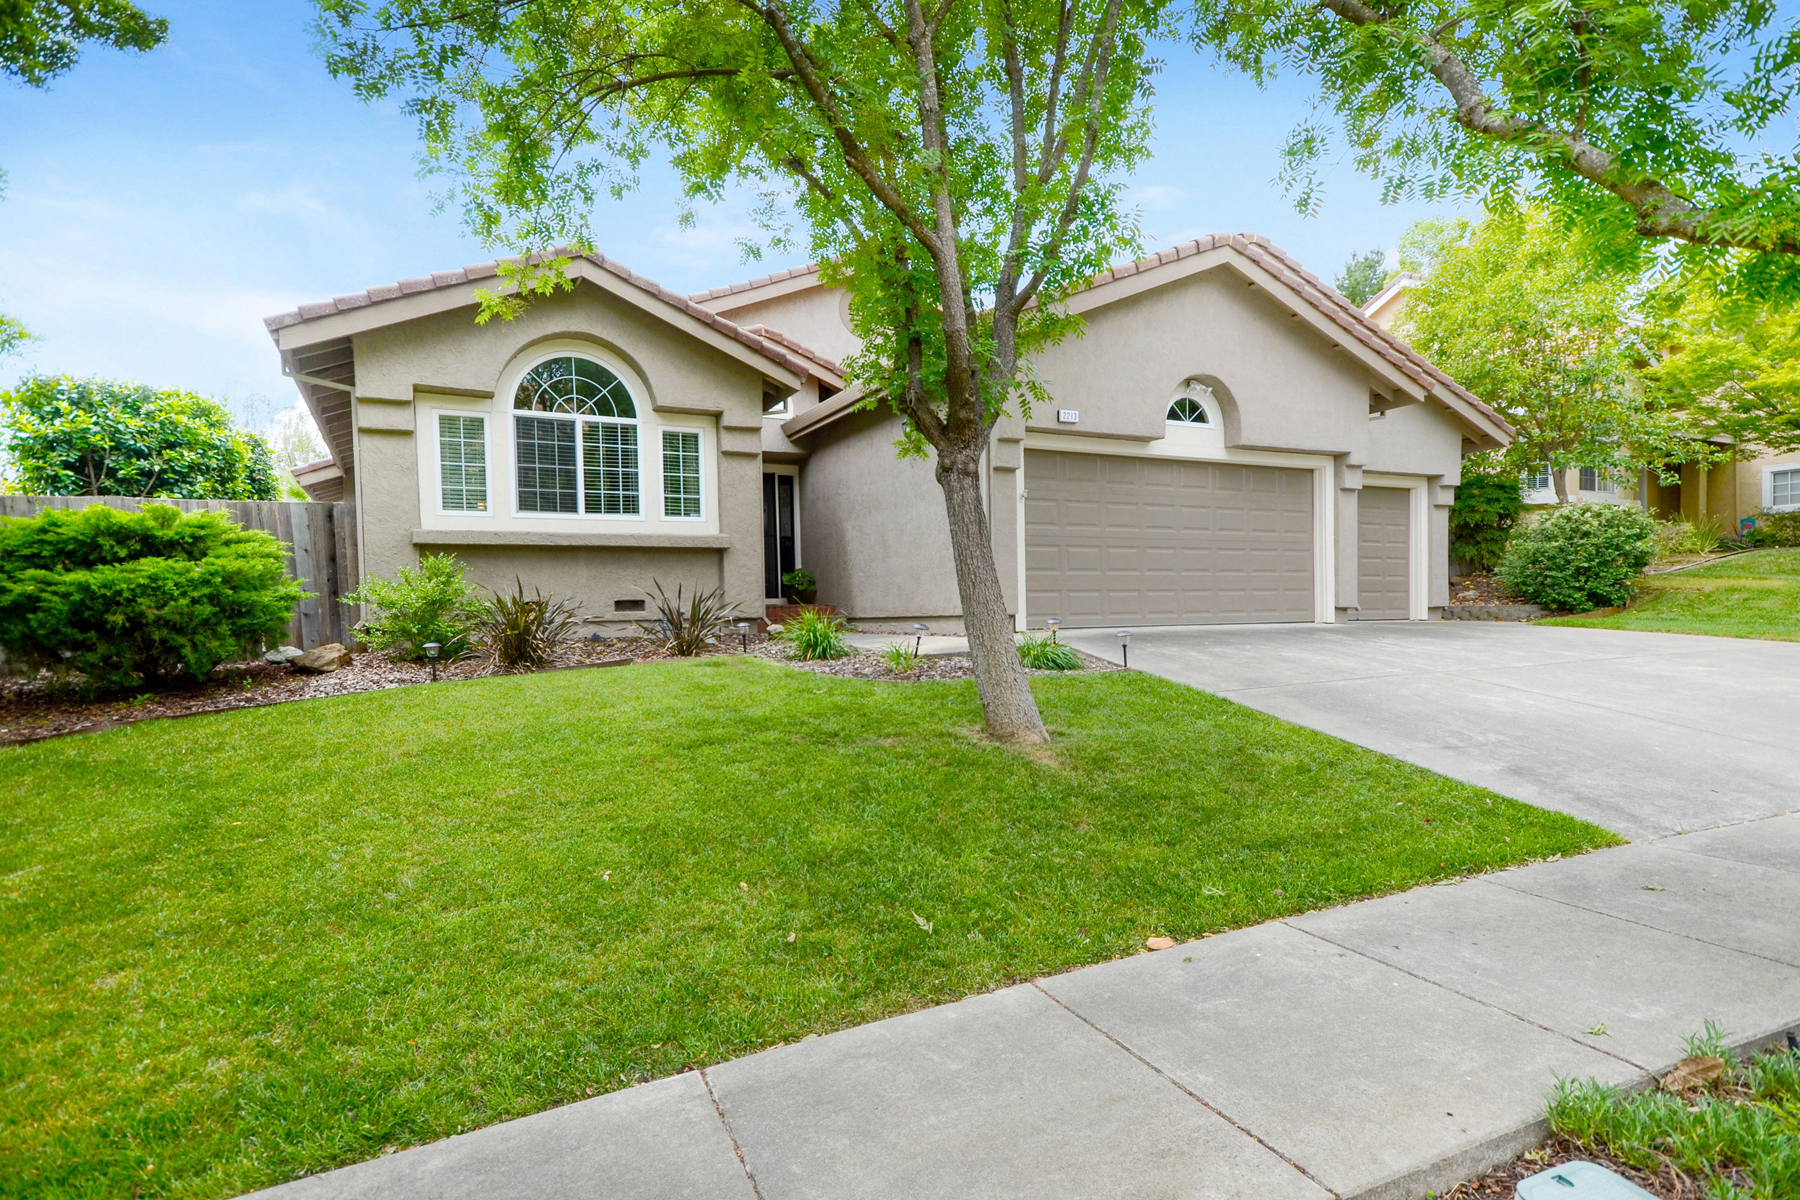 Single Family Home for Sale at Vaulted Ceilings and Natural Light on the West Side 2213 Fox Glen Drive Fairfield, California 94534 United States